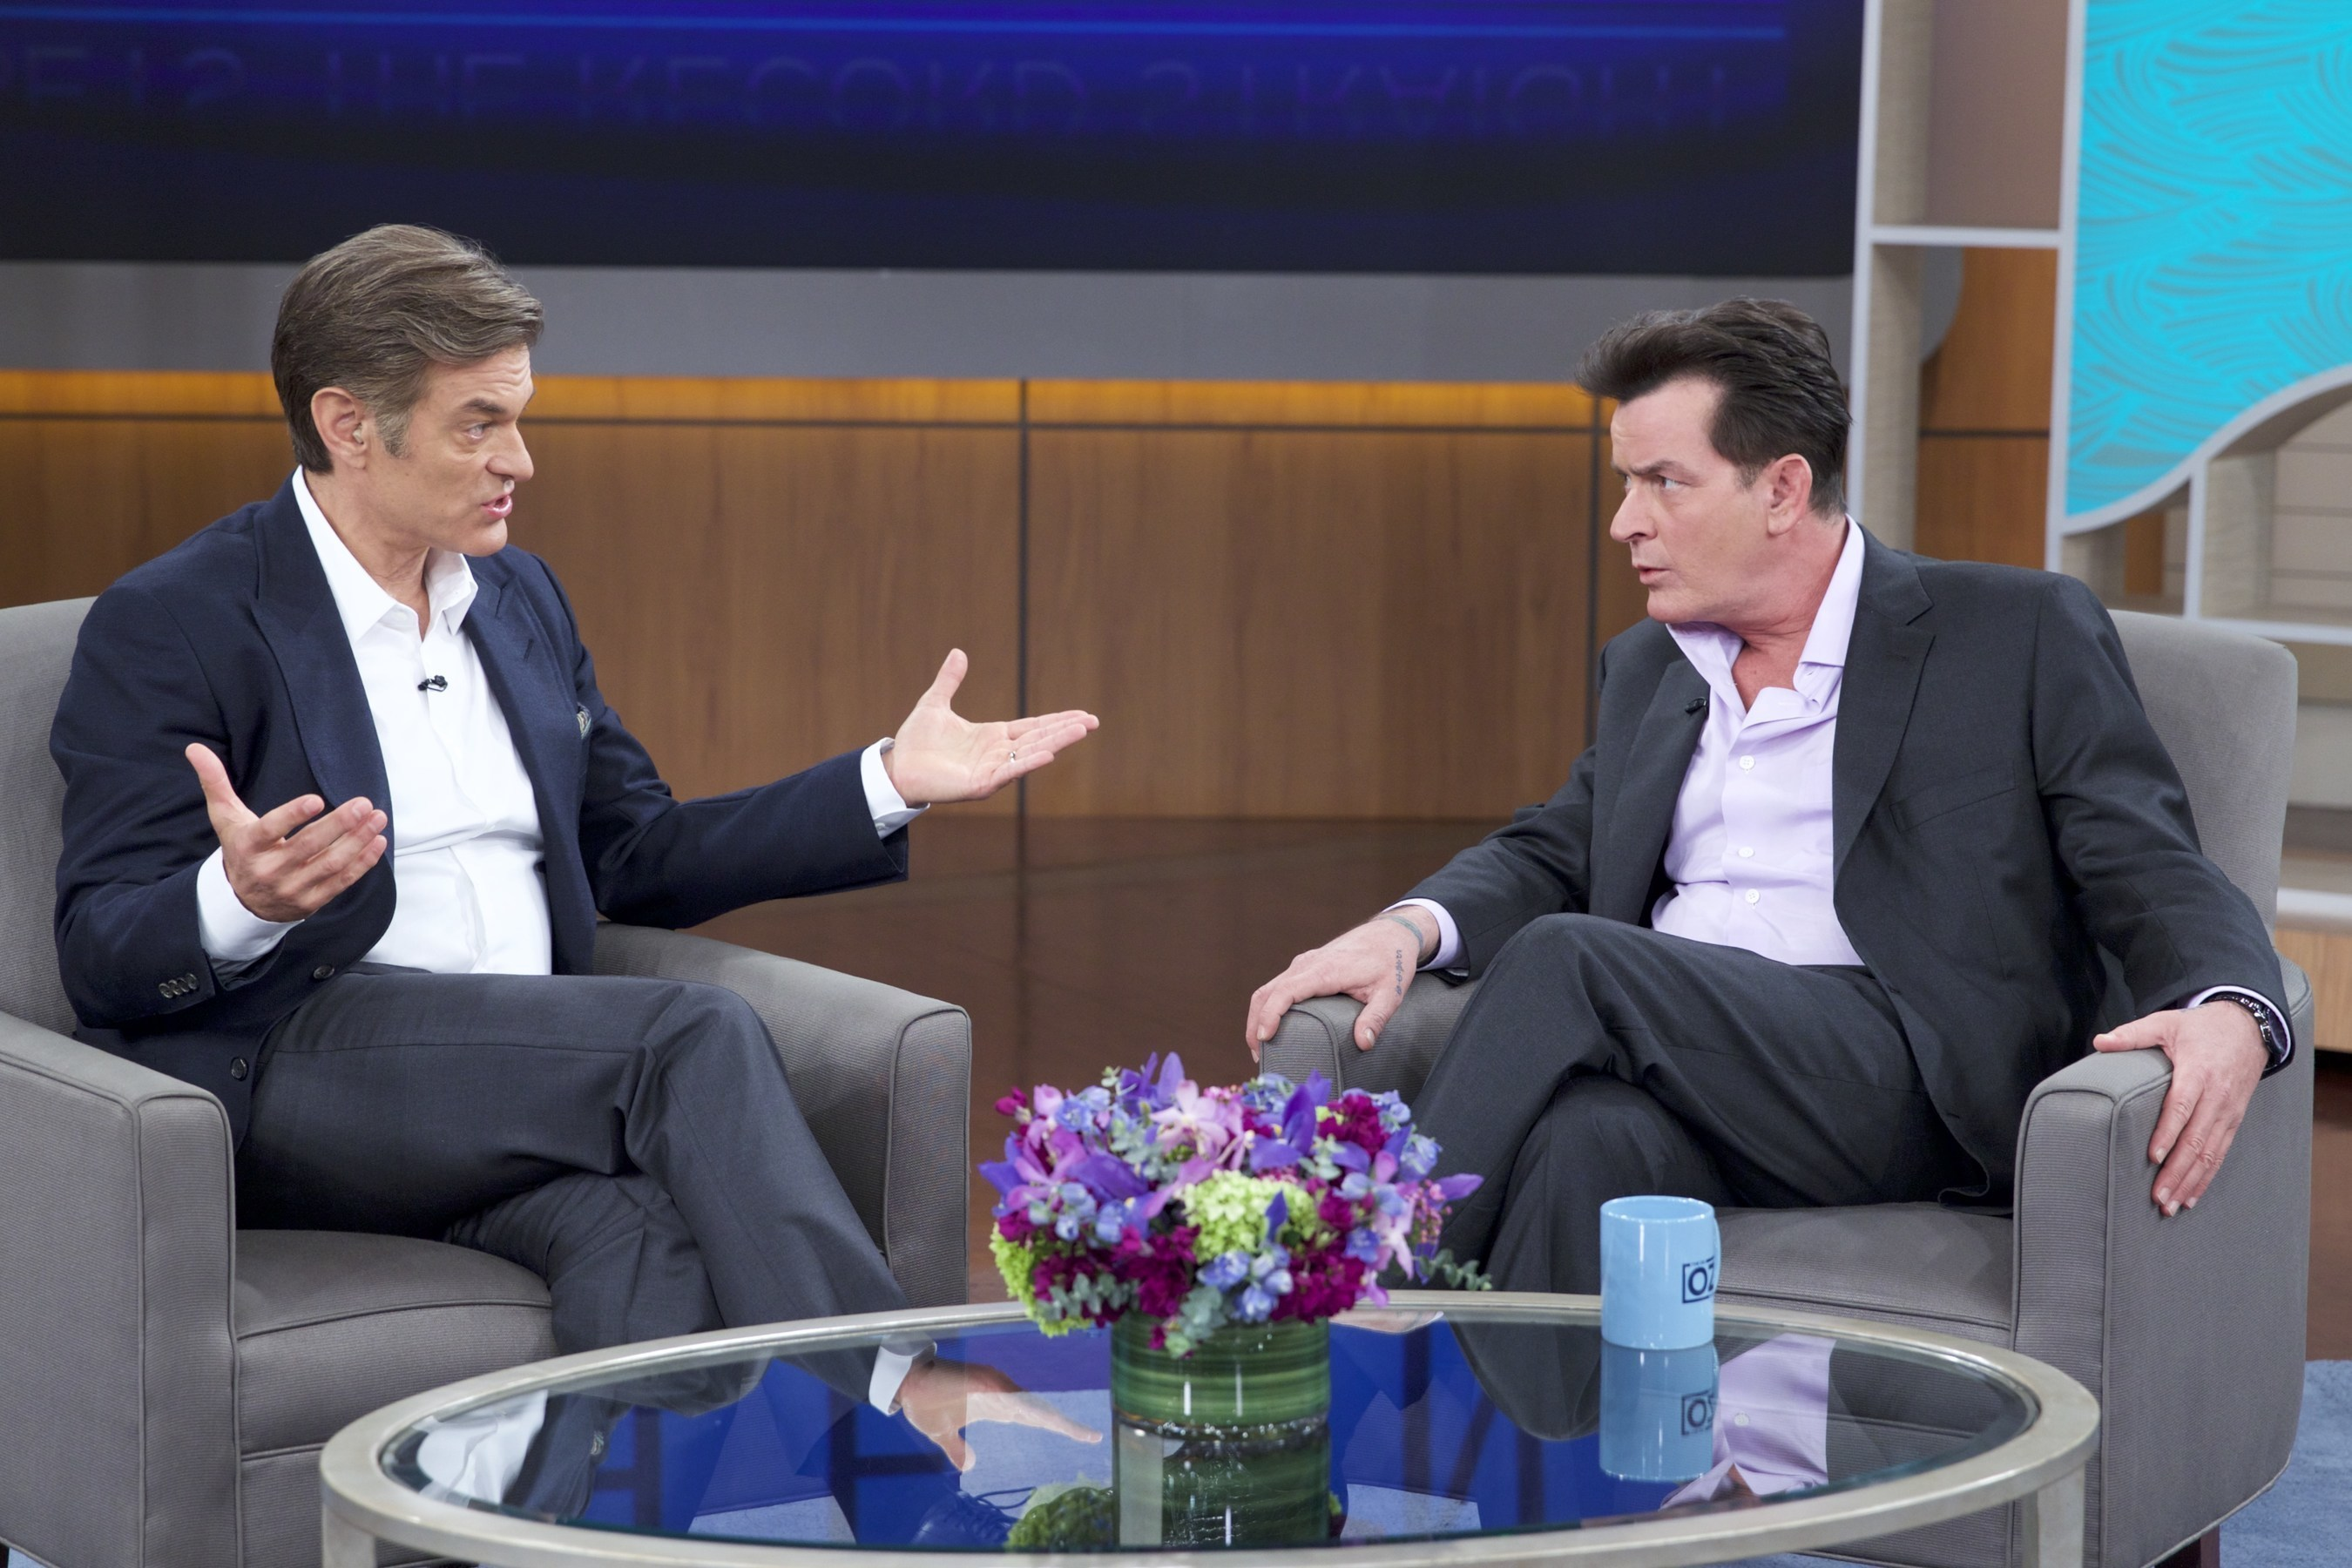 Charlie Sheen Returns To 'The Dr. Oz Show' For Another Exclusive In Depth Interview On His Experience With Dr. Samir Chachoua And His Close Call With His HIV Levels